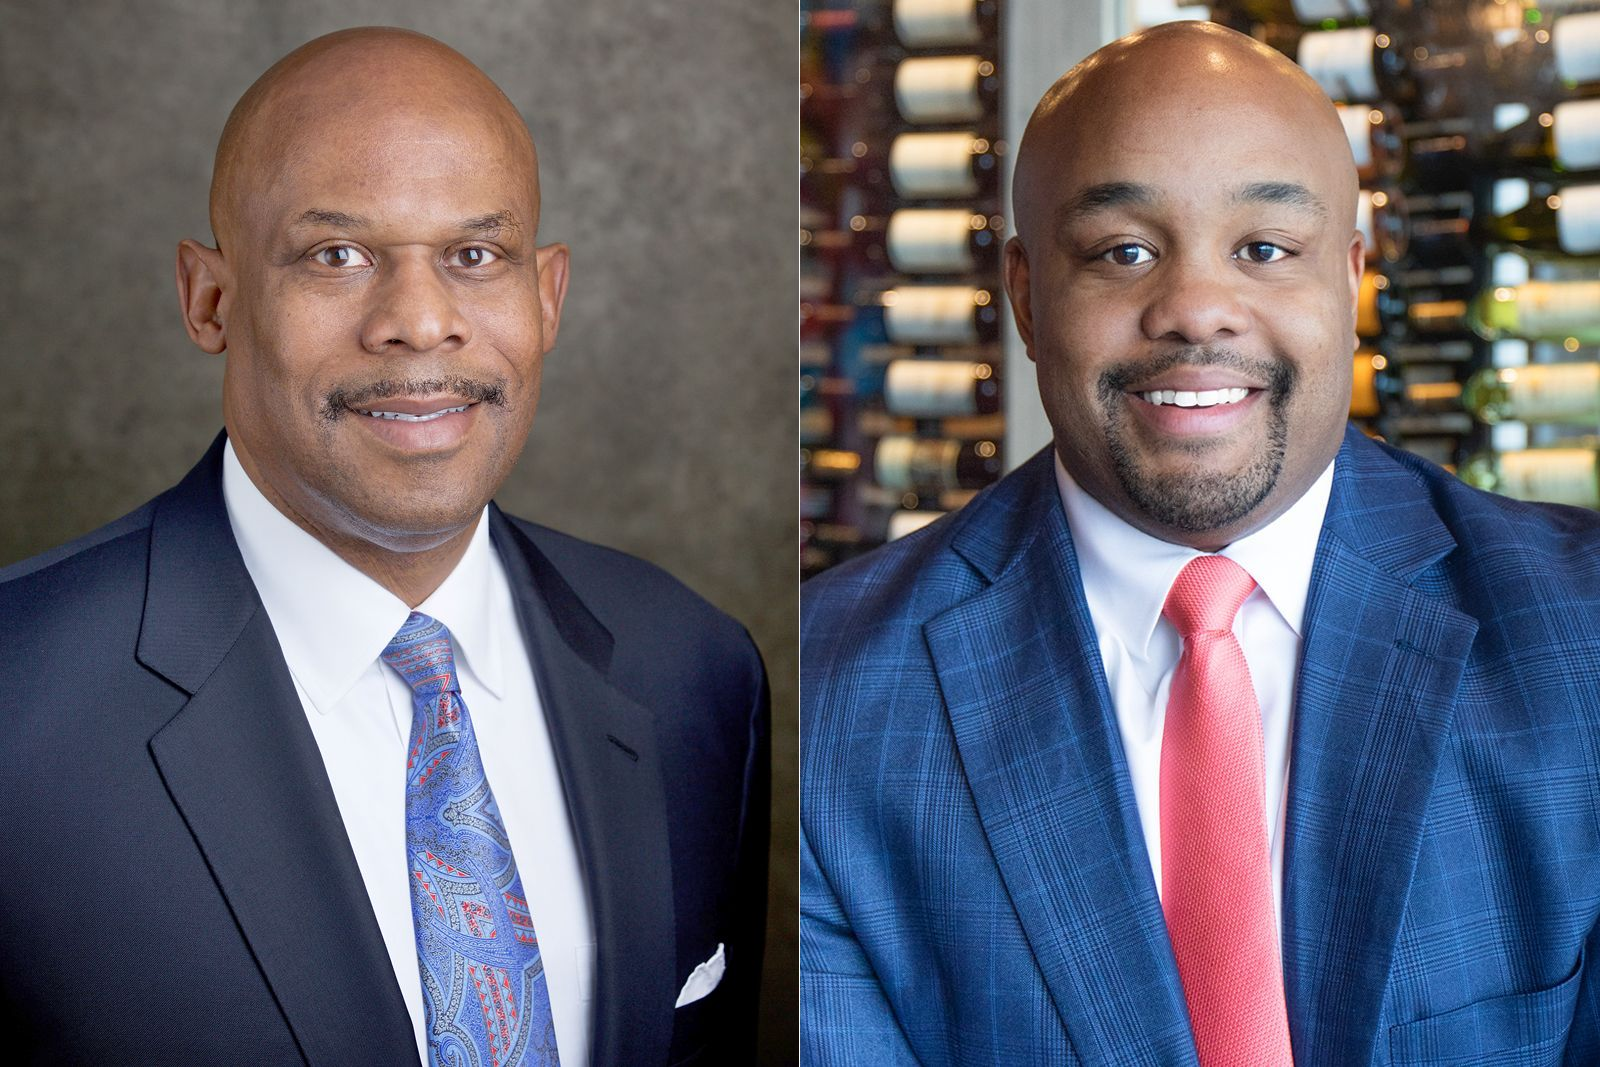 Warren Thompson (left) and Ron Jordan (right) are the hospitality professionals behind The Ridley, a new restaurant opening in Charlottesville, VA, to commemorate the life and legacy of Walter N. Ridley.